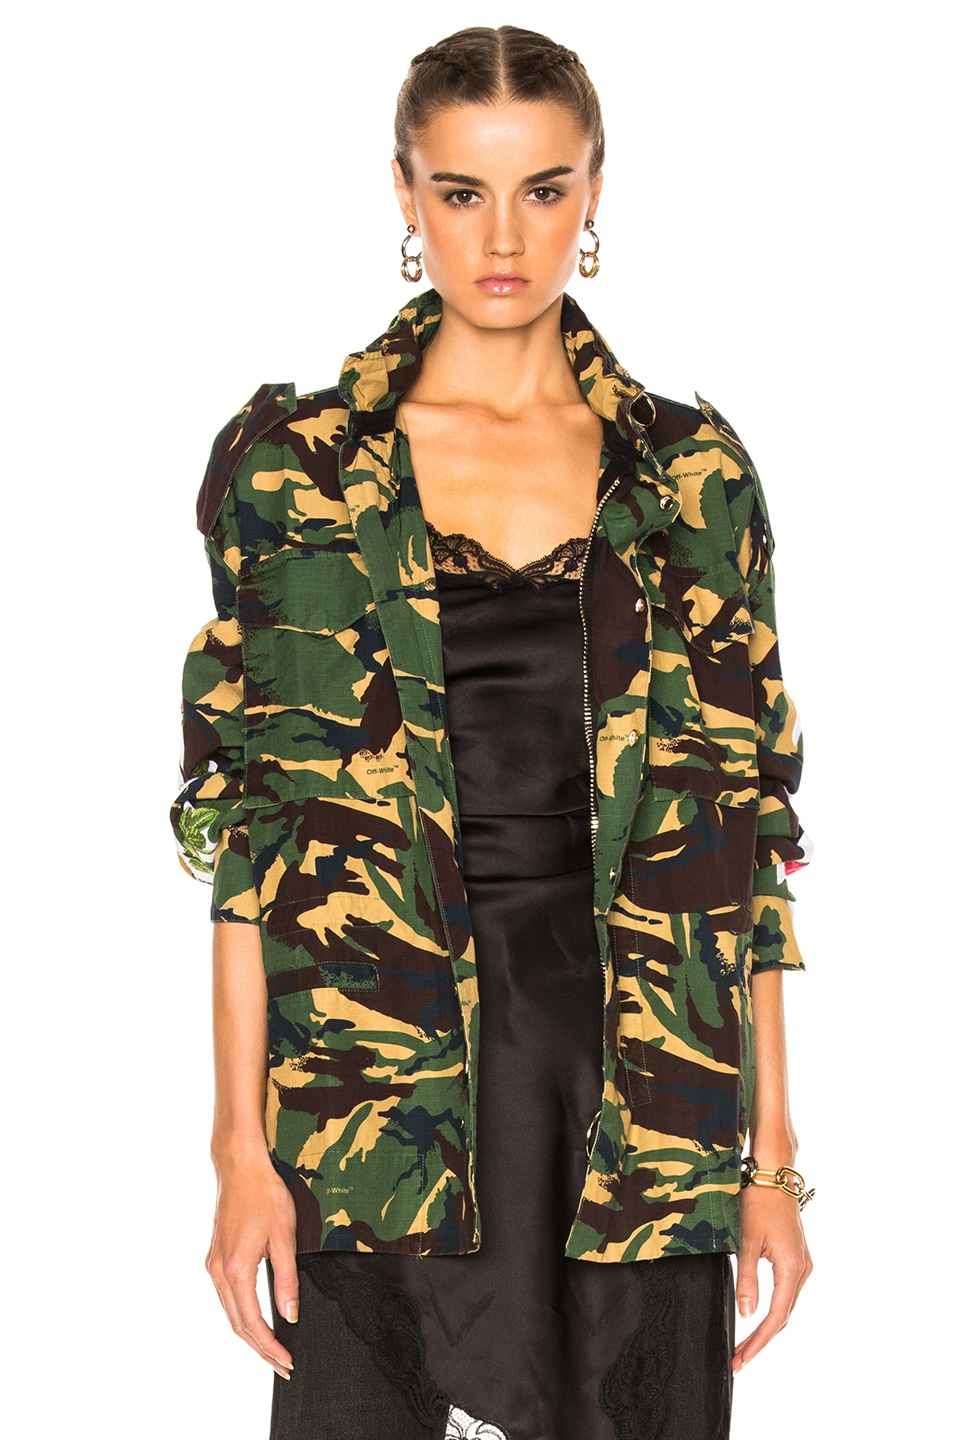 616da48c6f803 Image 2 of OFF-WHITE Diagonal Roses M65 Jacket in Green Camouflage